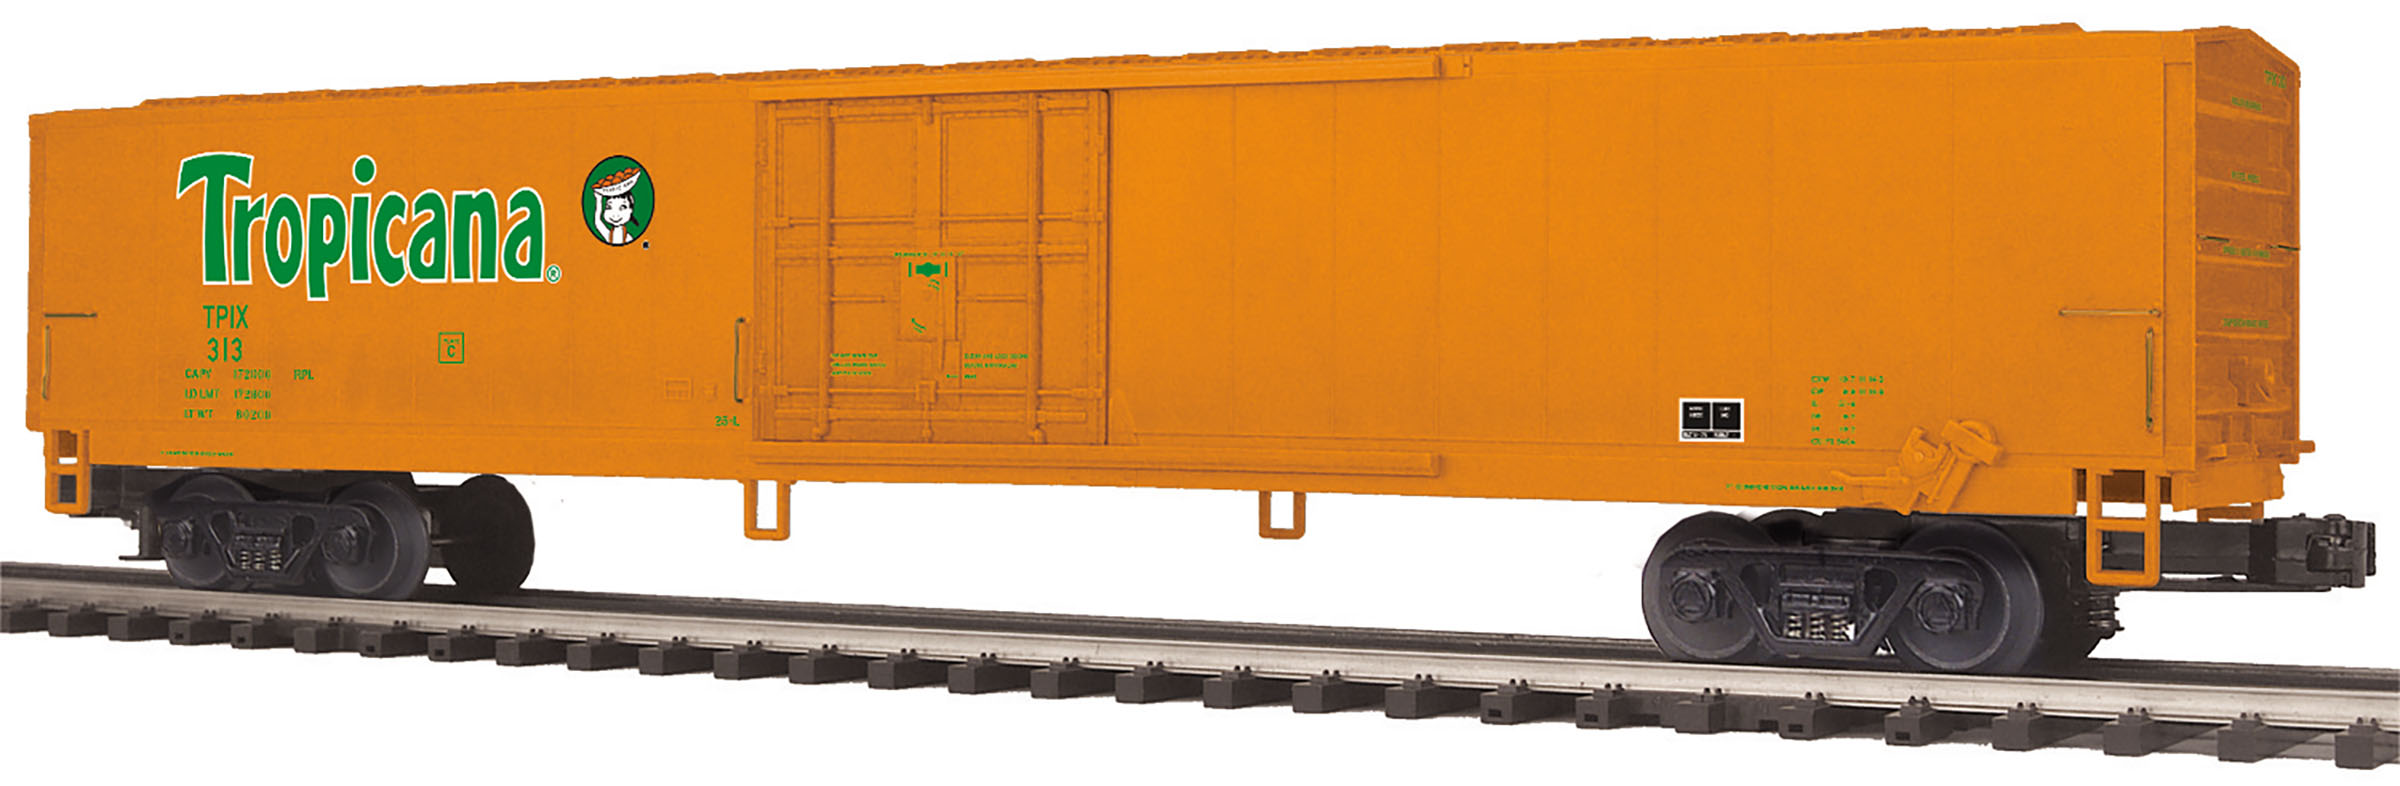 MTH2094433 MTH Electric Trains O 60' Reefer Tropicana 313 507-2094433